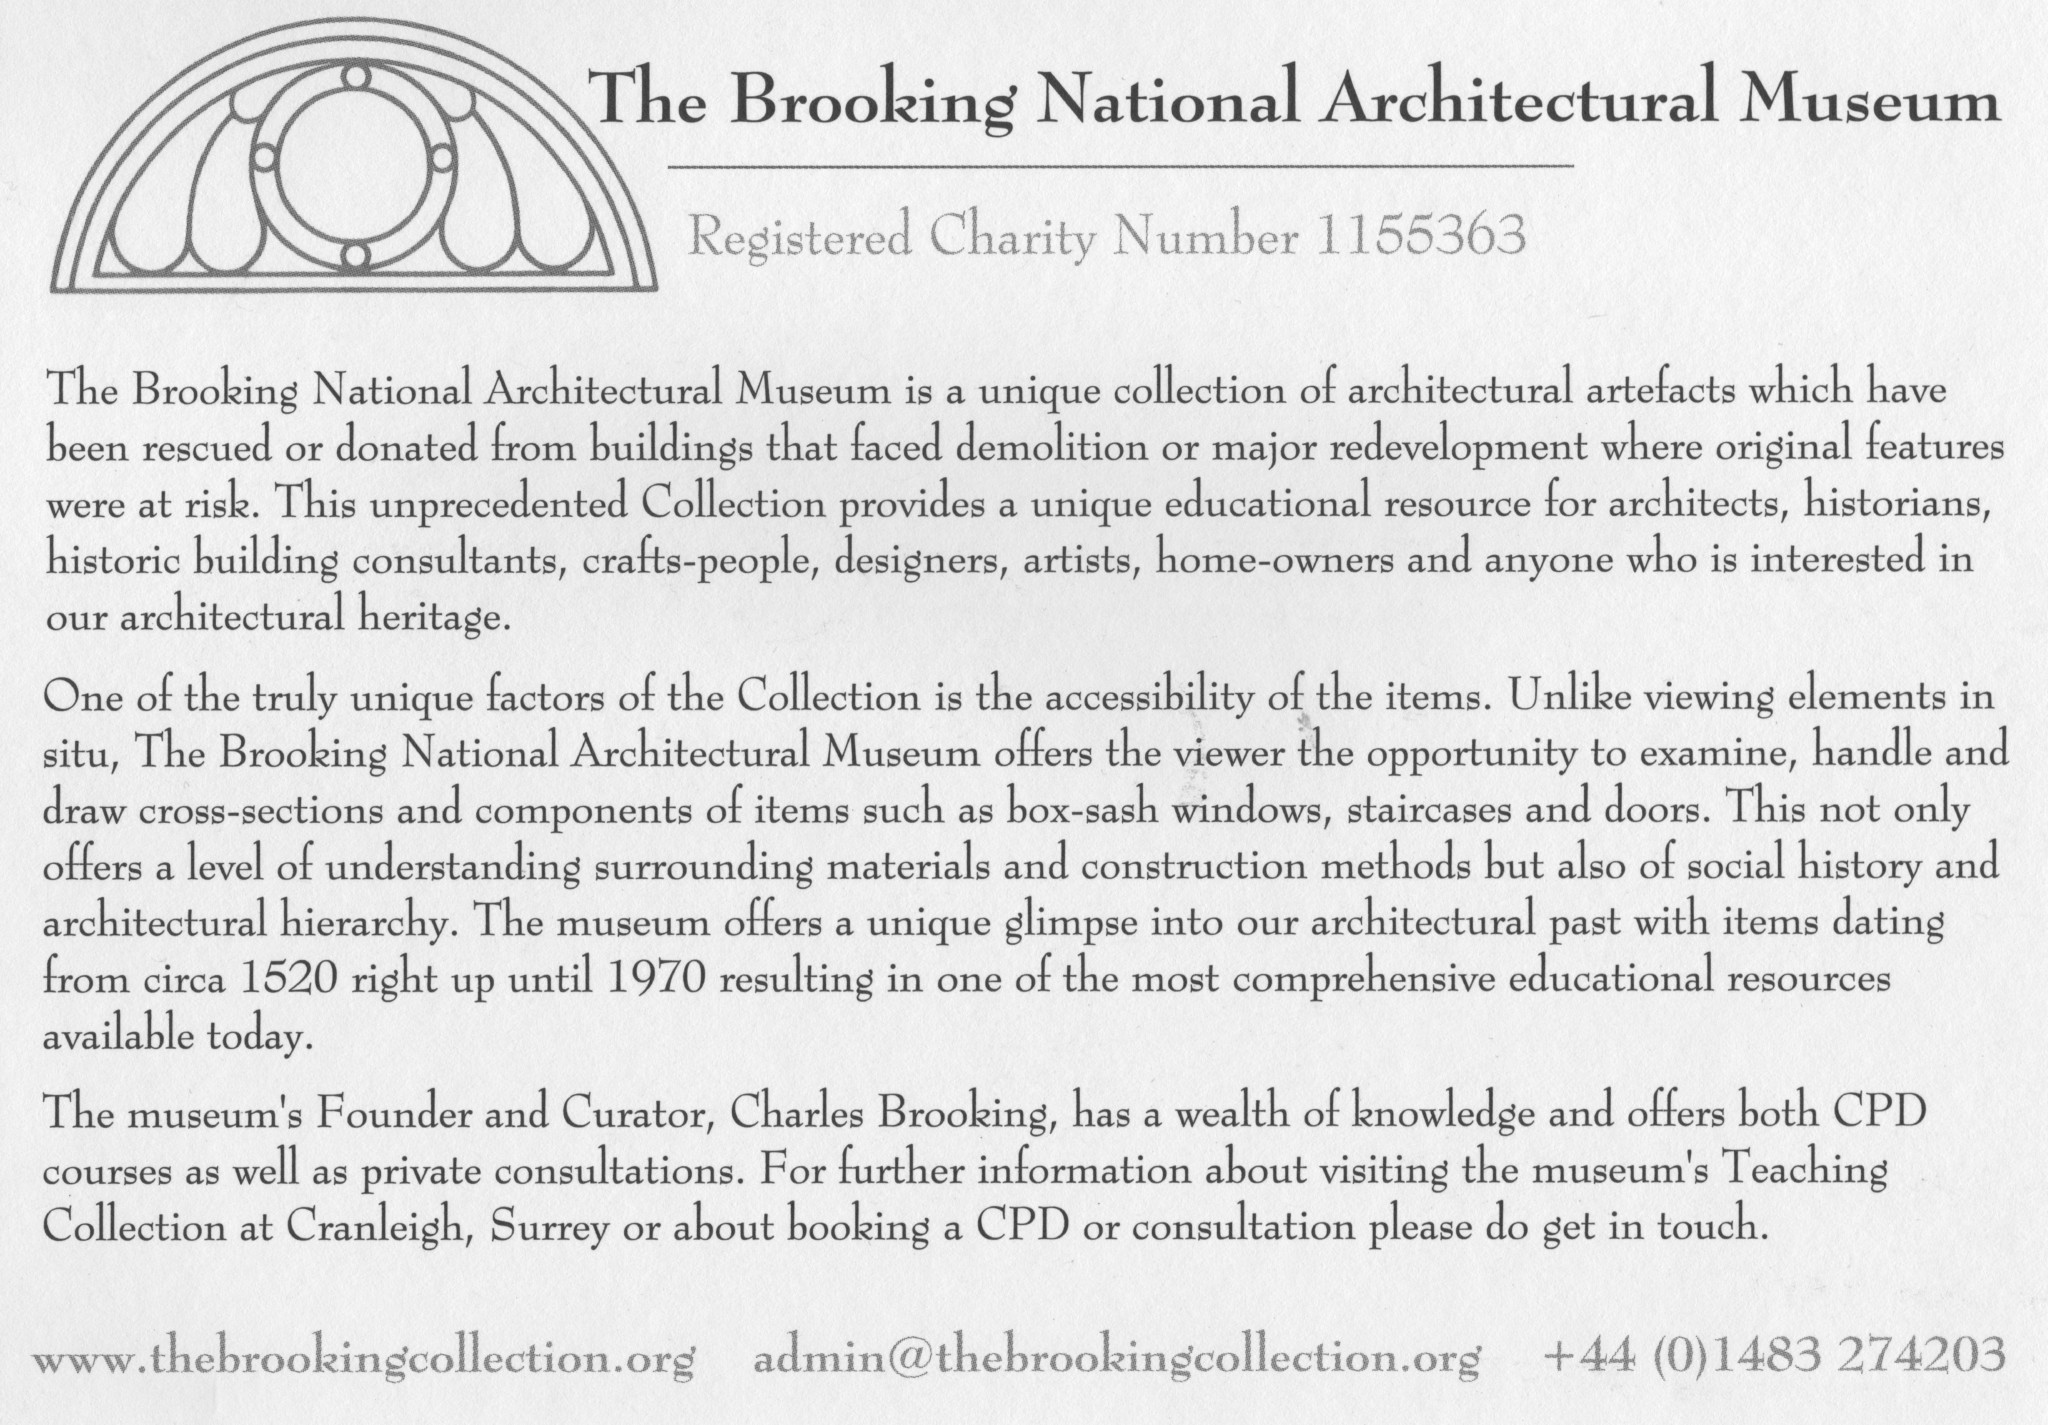 The Brooking collection